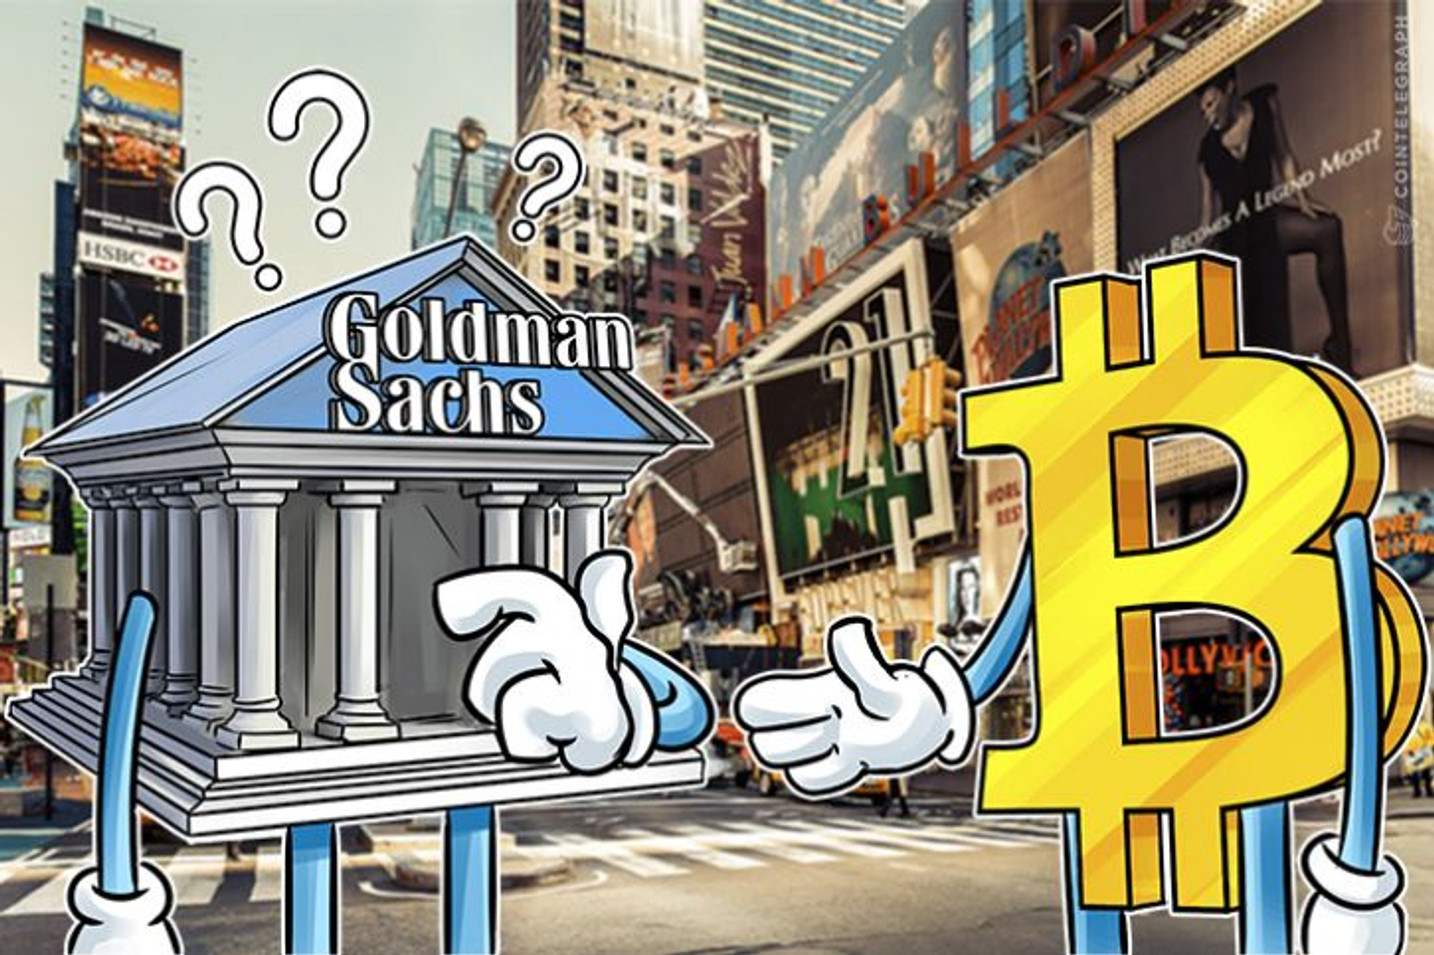 Goldman Sachs CEO Open to Considering Bitcoin Trading Once Currency Becomes Established